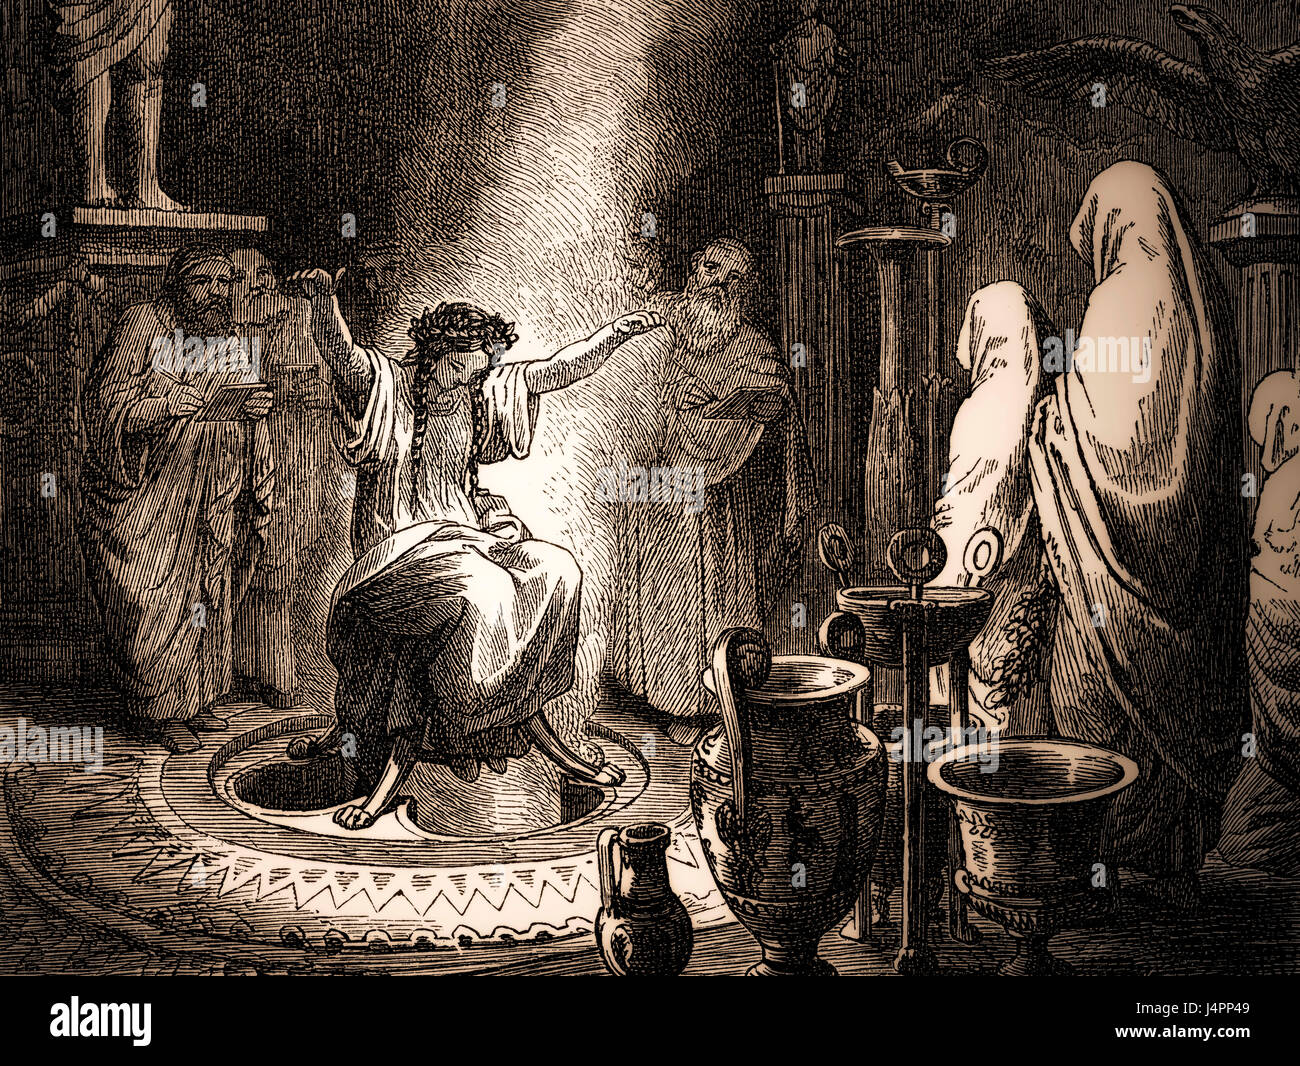 Pythia, the High Priestess of the Temple of Apollo at Delphi,  Oracle of Delphi, Ancient Greece - Stock Image